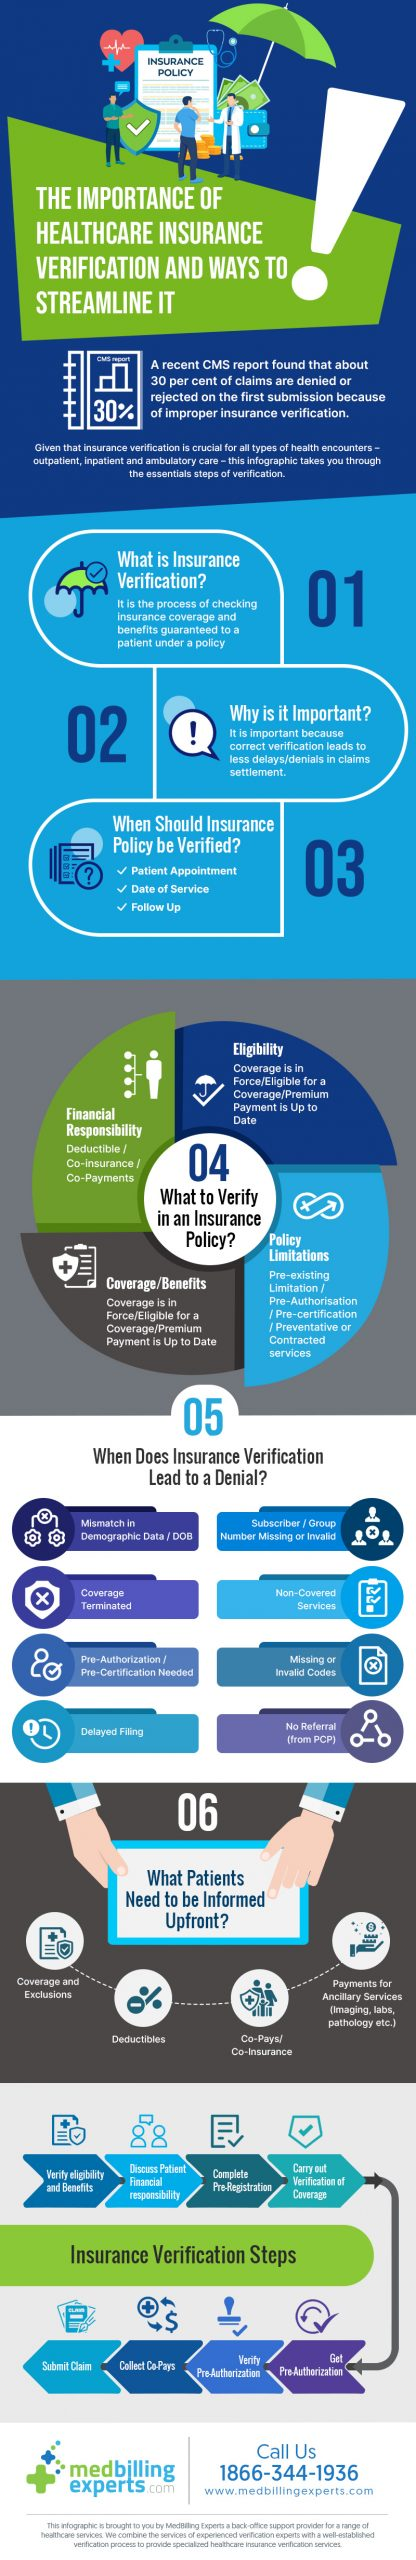 The Importance of Healthcare Insurance Verification and Ways to Streamline It